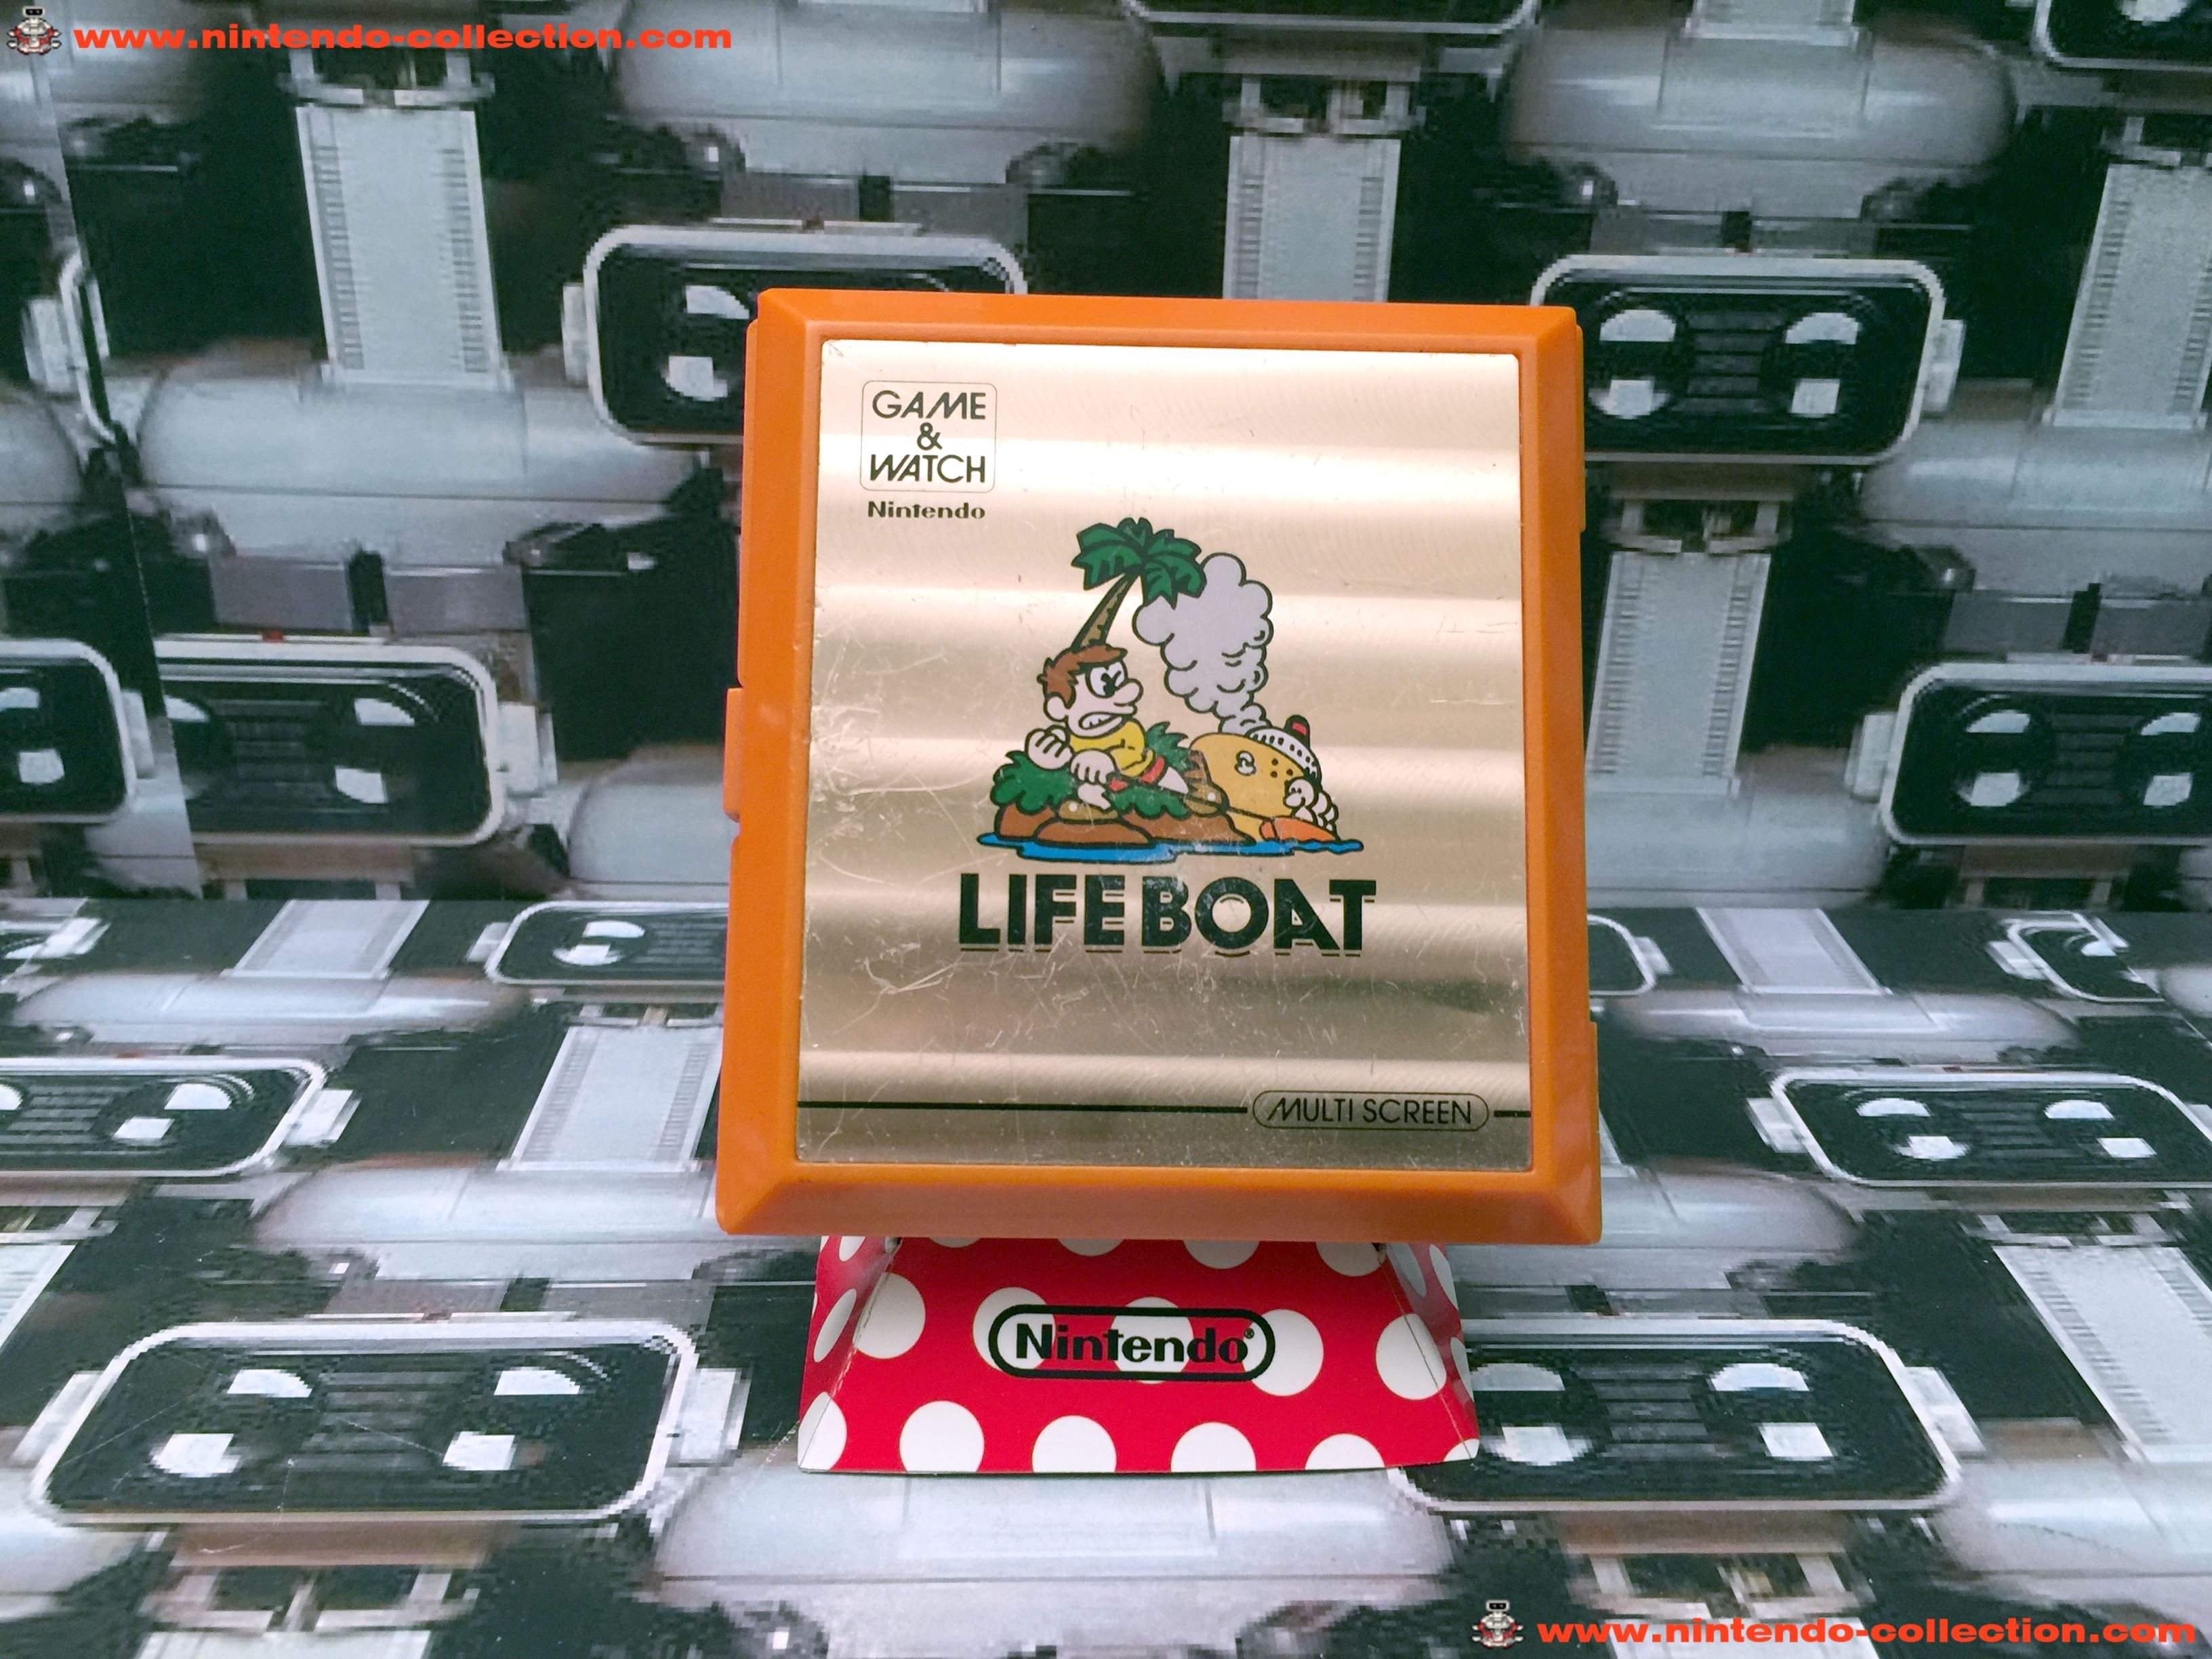 www.nintendo-collection.com - Game & Watch Multi Screen Life Boat - 01